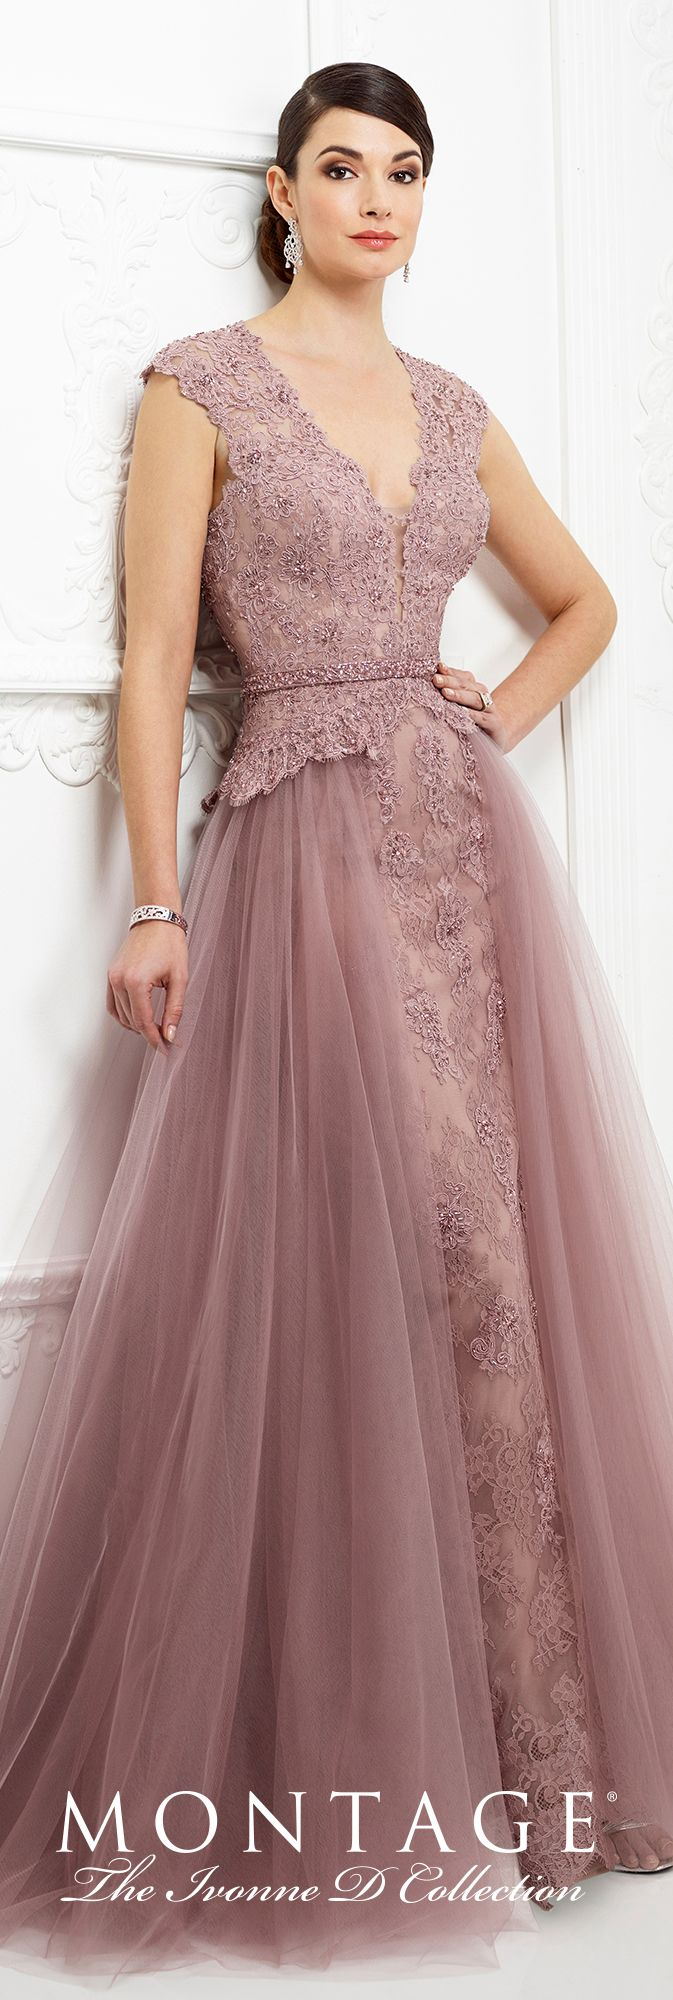 Best 25+ Lace evening gowns ideas only on Pinterest | Evening ...